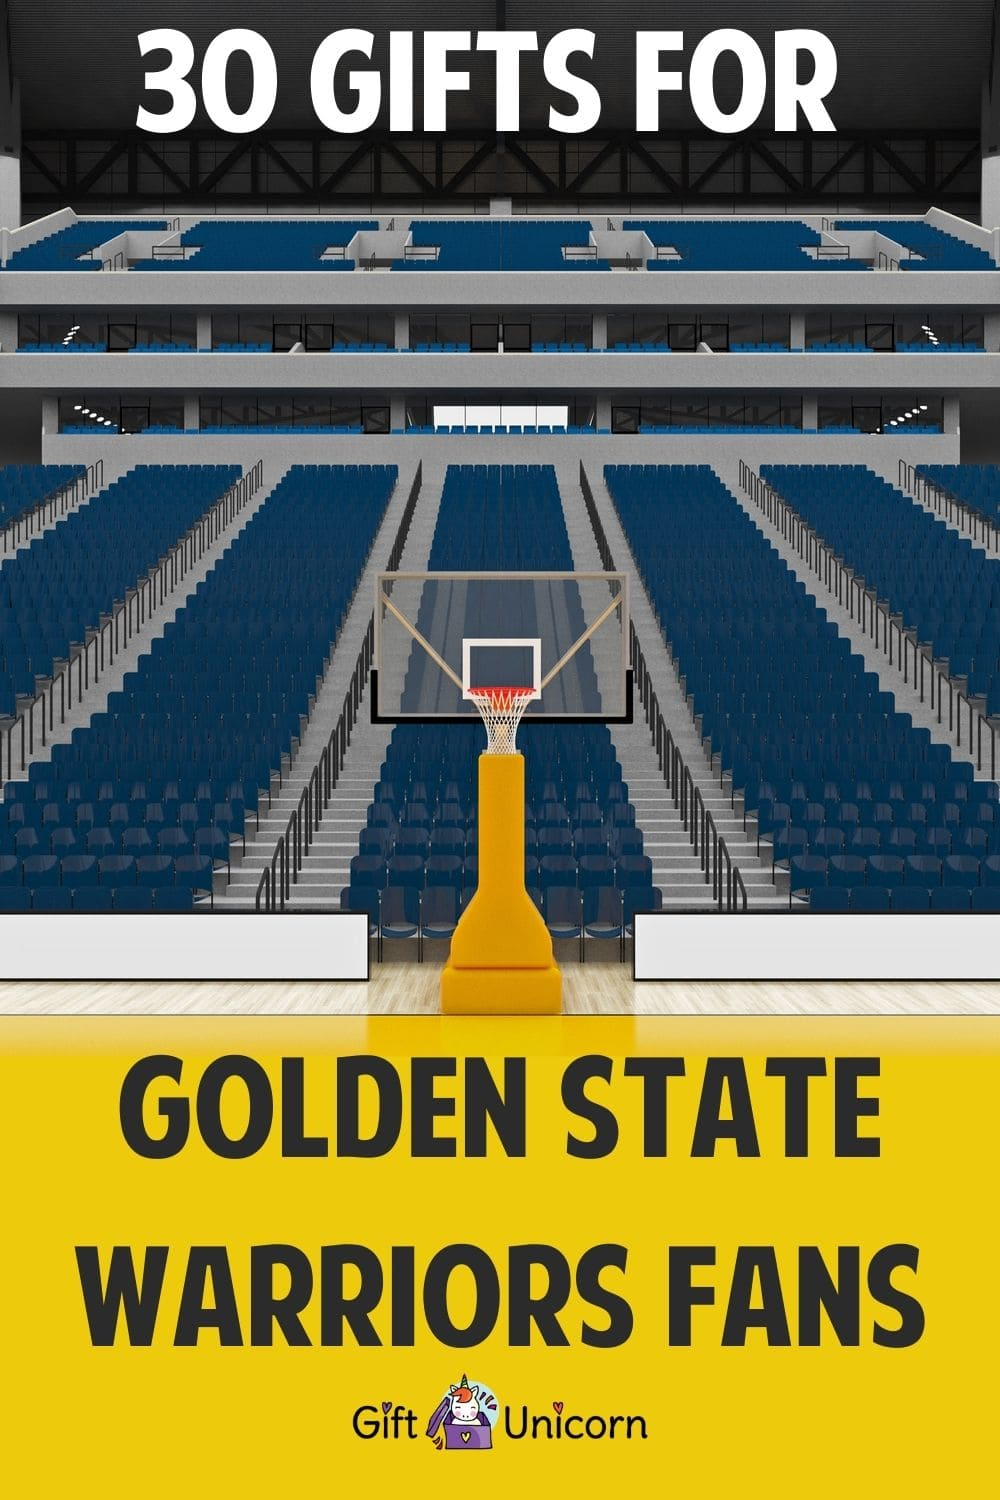 30 gifts for golden state warriors fans pinterest pin image